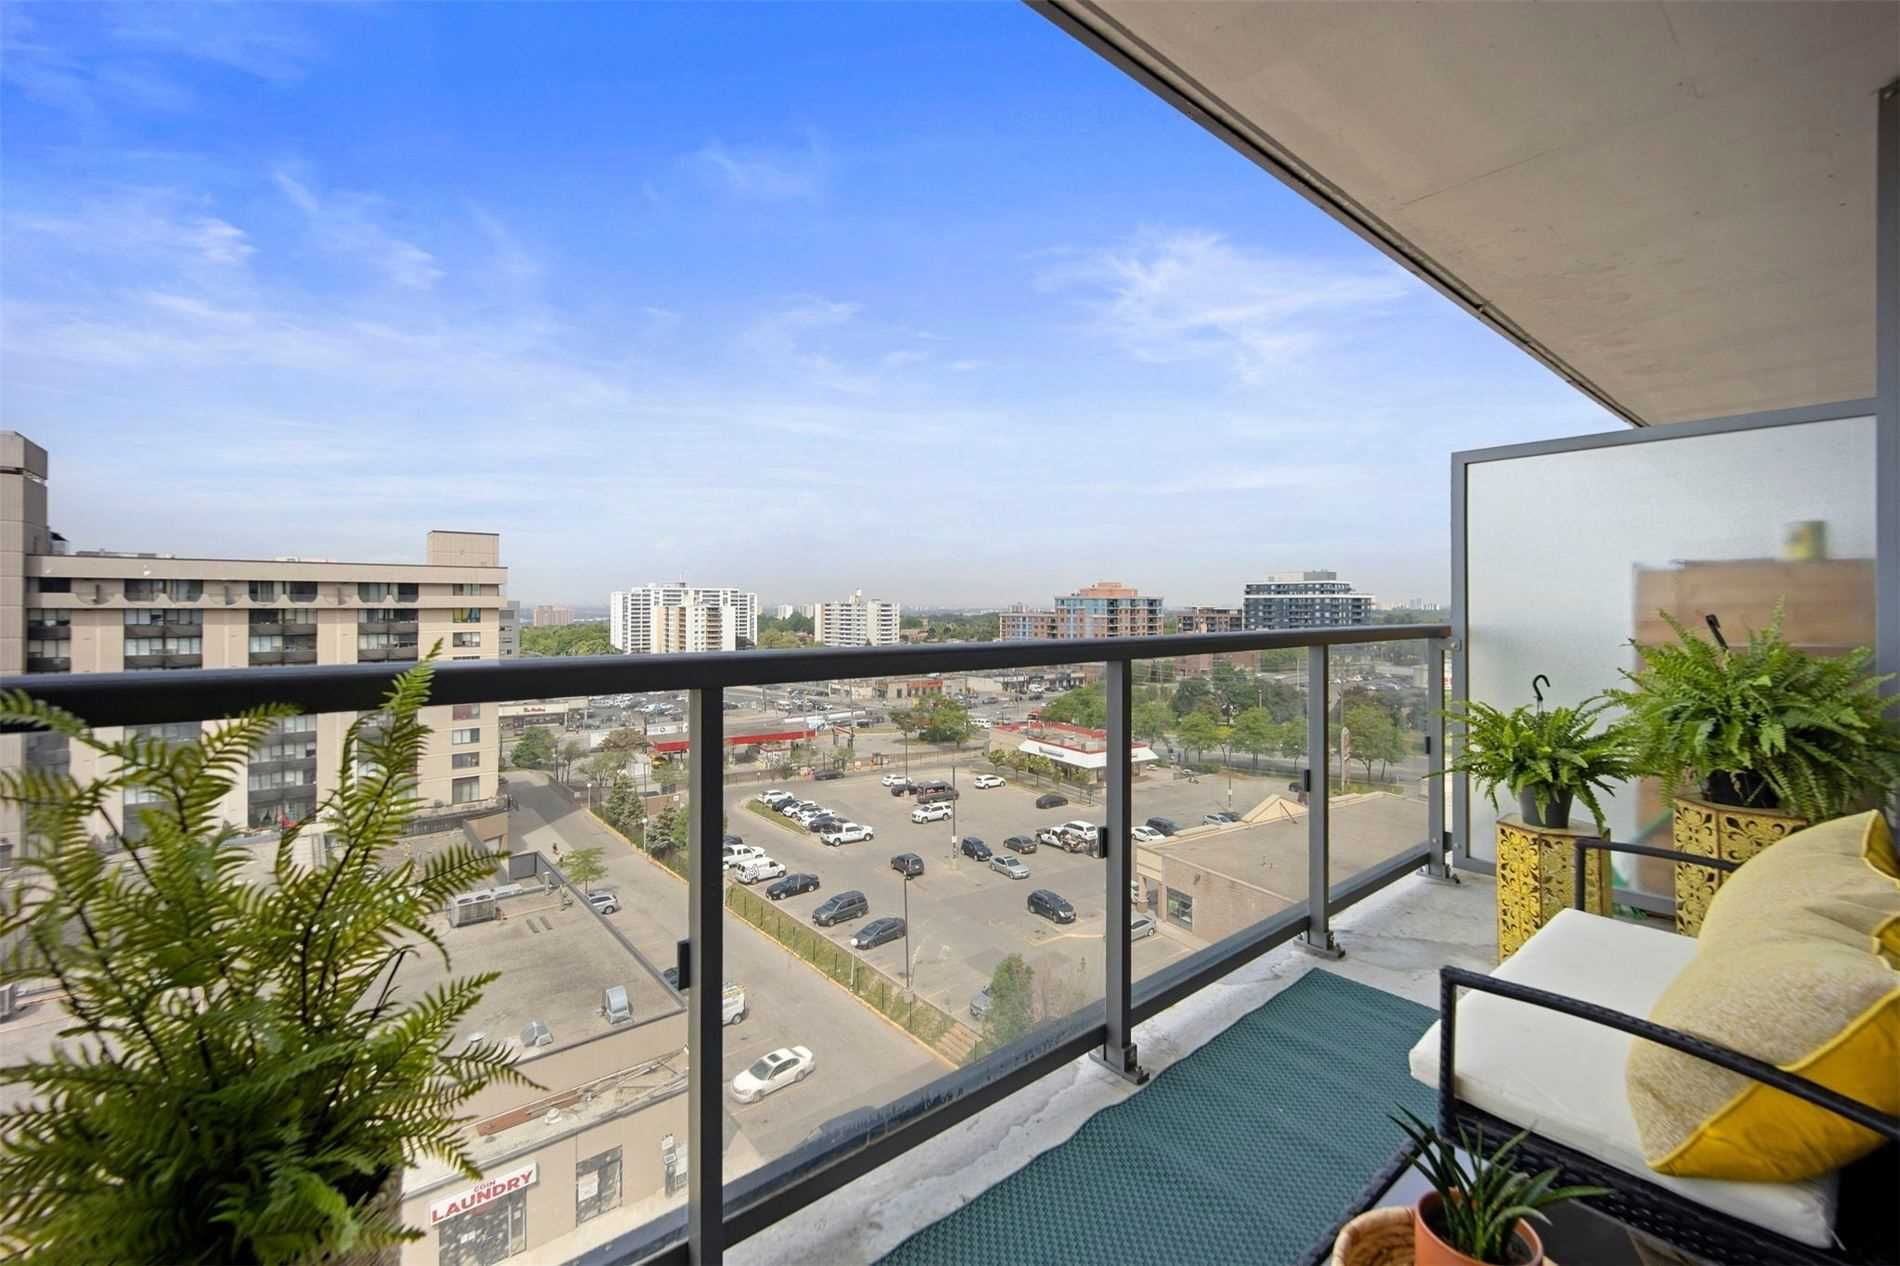 15 James Finlay Way, unit 1003 for sale in Toronto - image #1